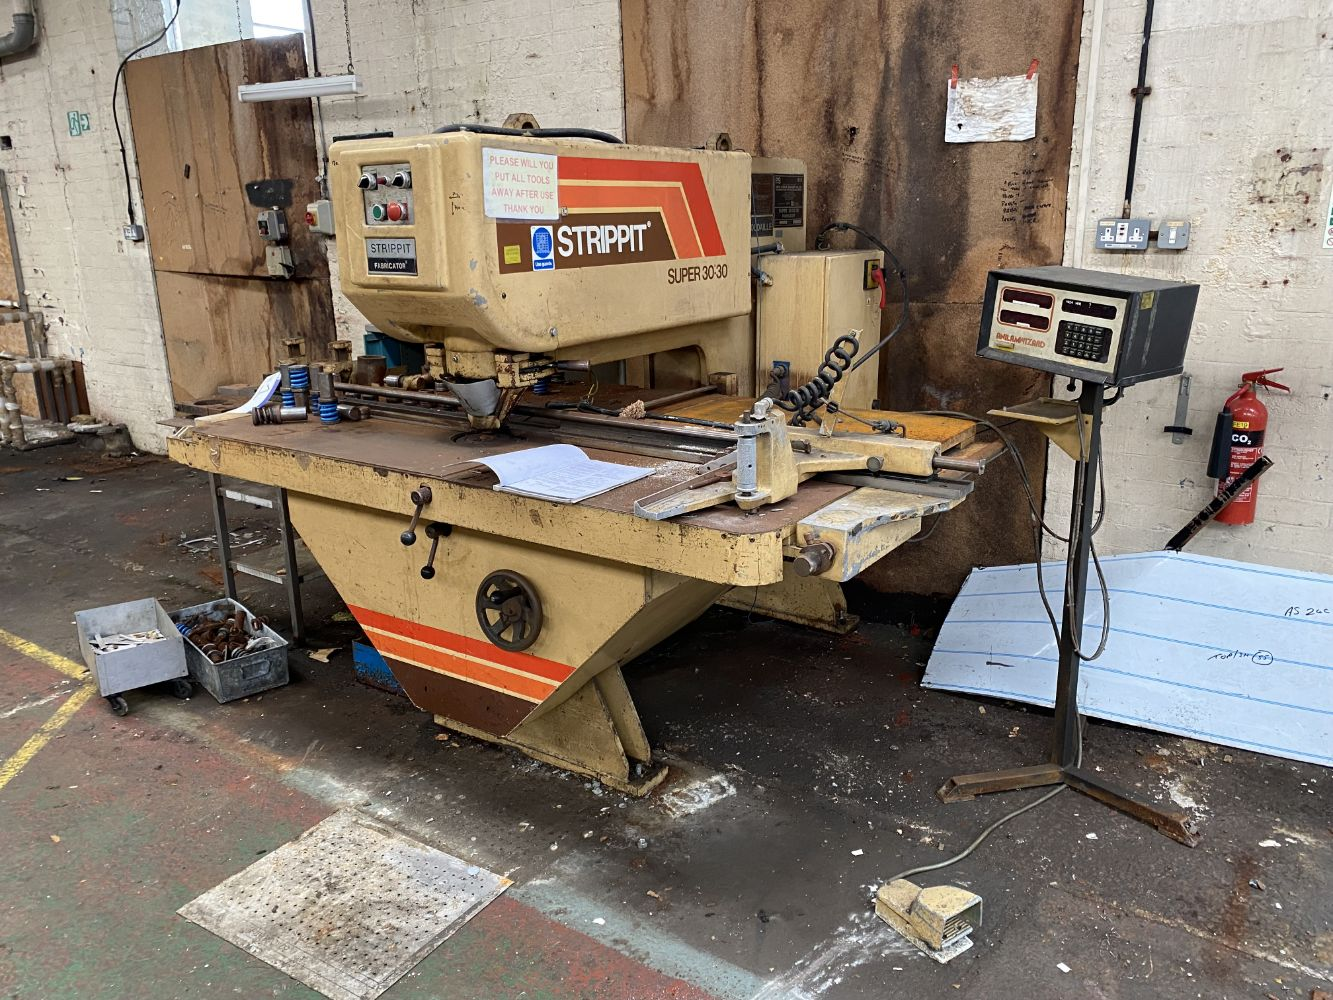 Metalworking, Fabrication & Food Processing Machinery, Space Heaters, Overhead Cranes (5T), Fork Lifts, Office Furniture & Equipment